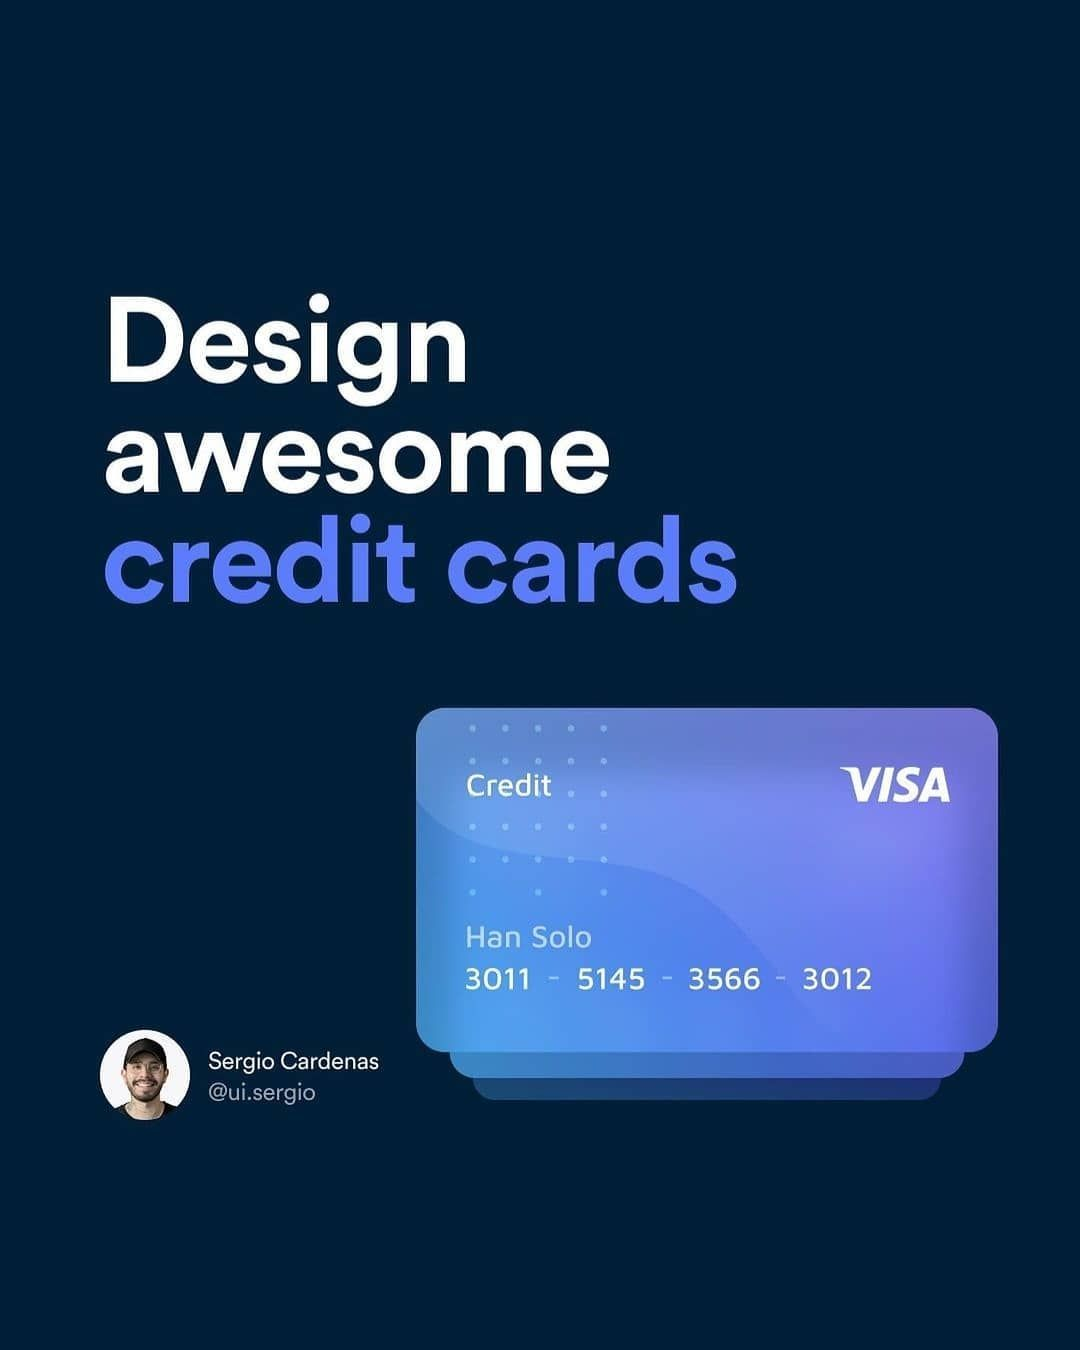 Design awesome credit cards